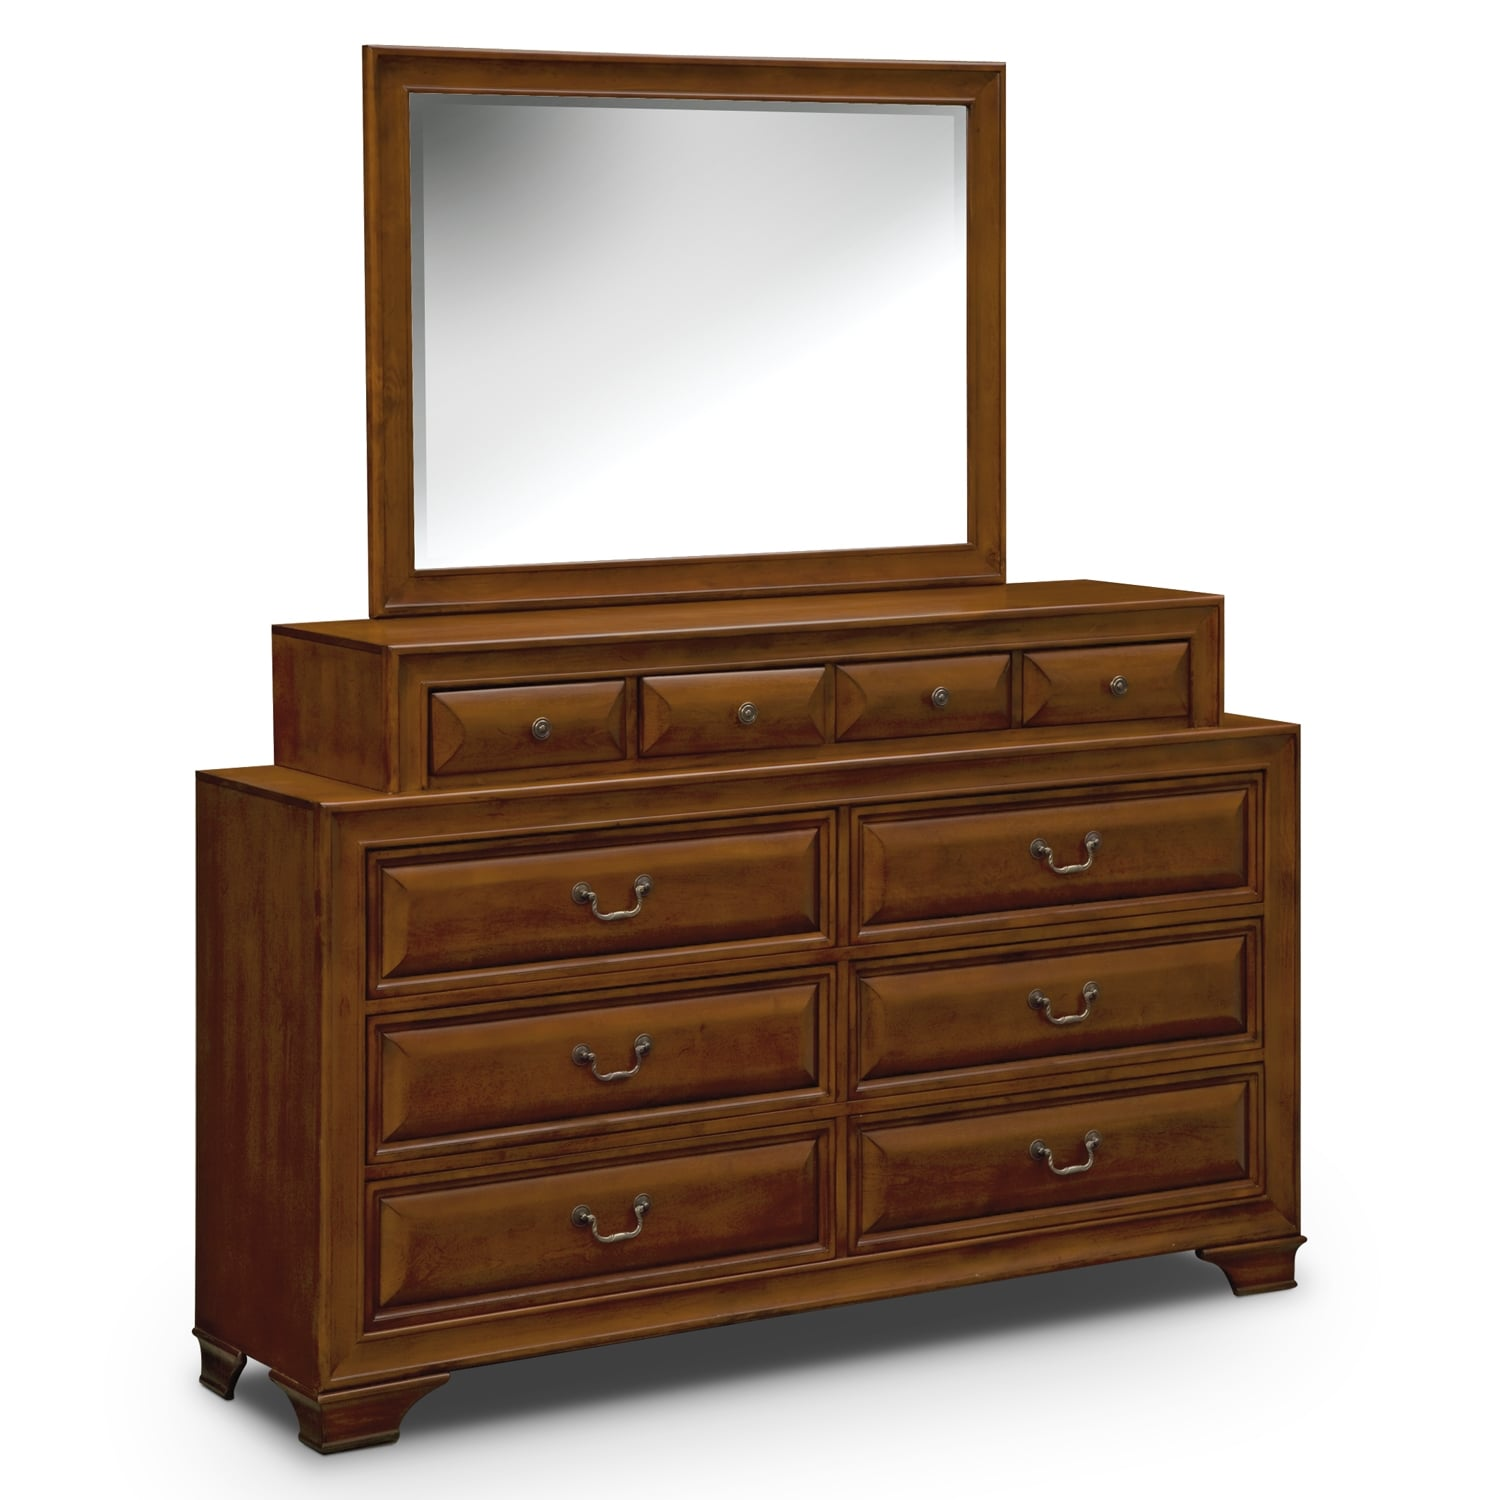 Sanibelle Dresser and Mirror - Pine